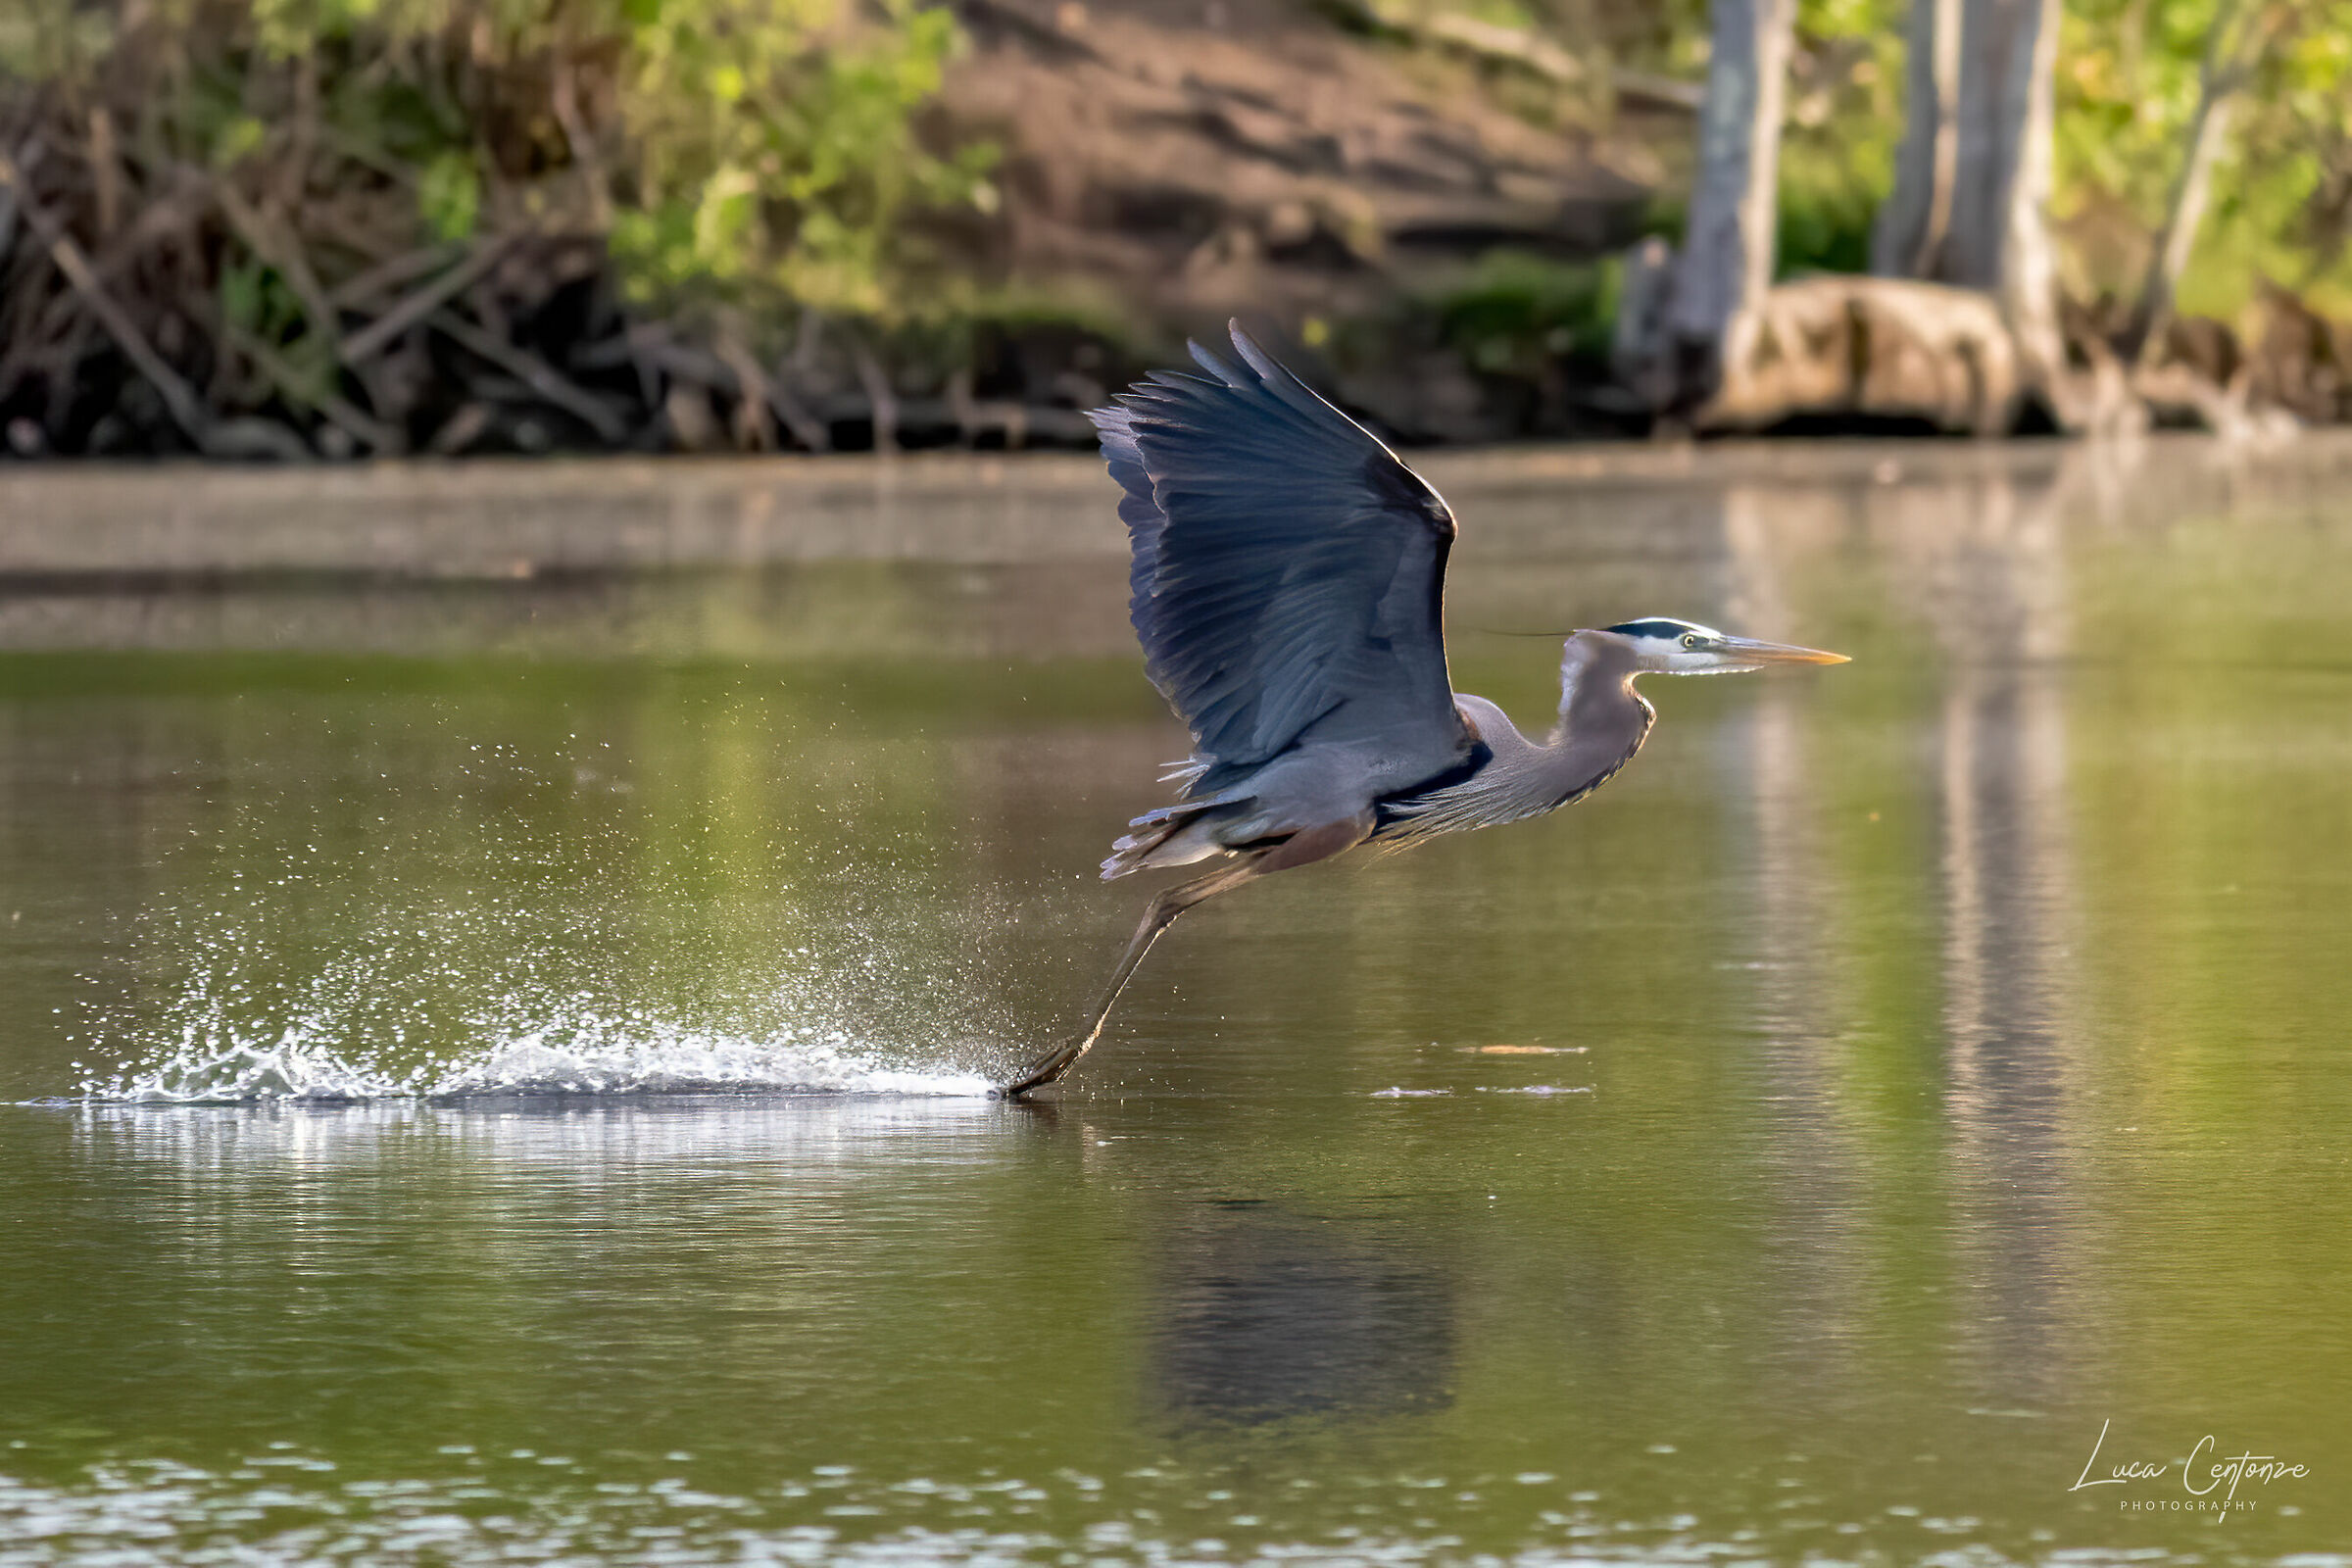 The Flight of the Heron...